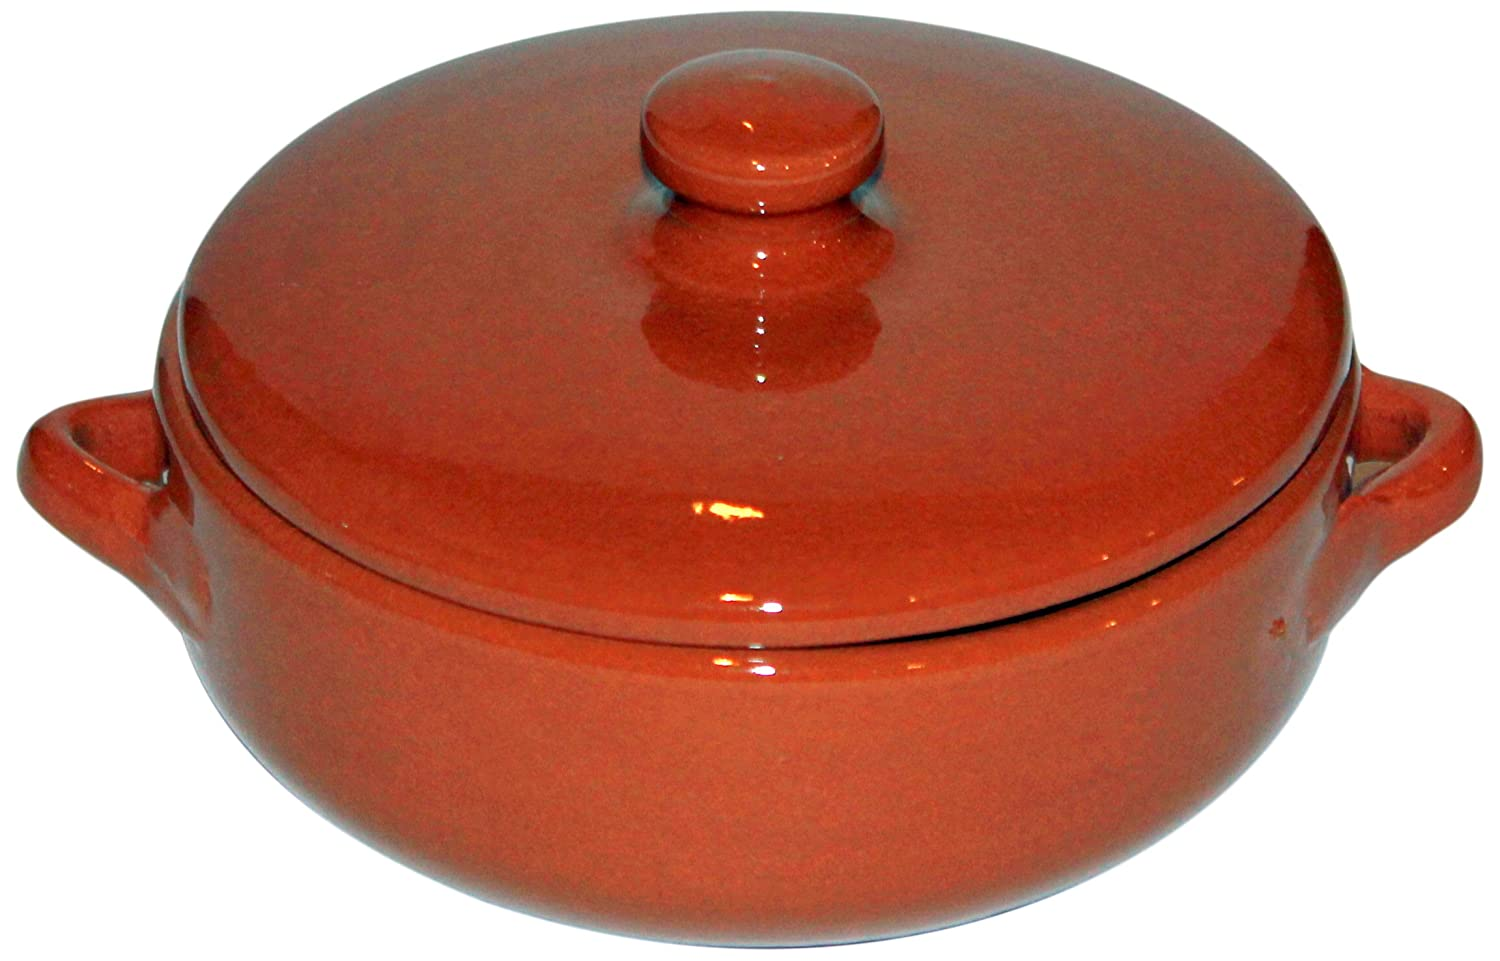 Amazing Cookware SB133 Natural Terracotta Deep Dish with Lid (Diameter 15cm, Depth 5cm)